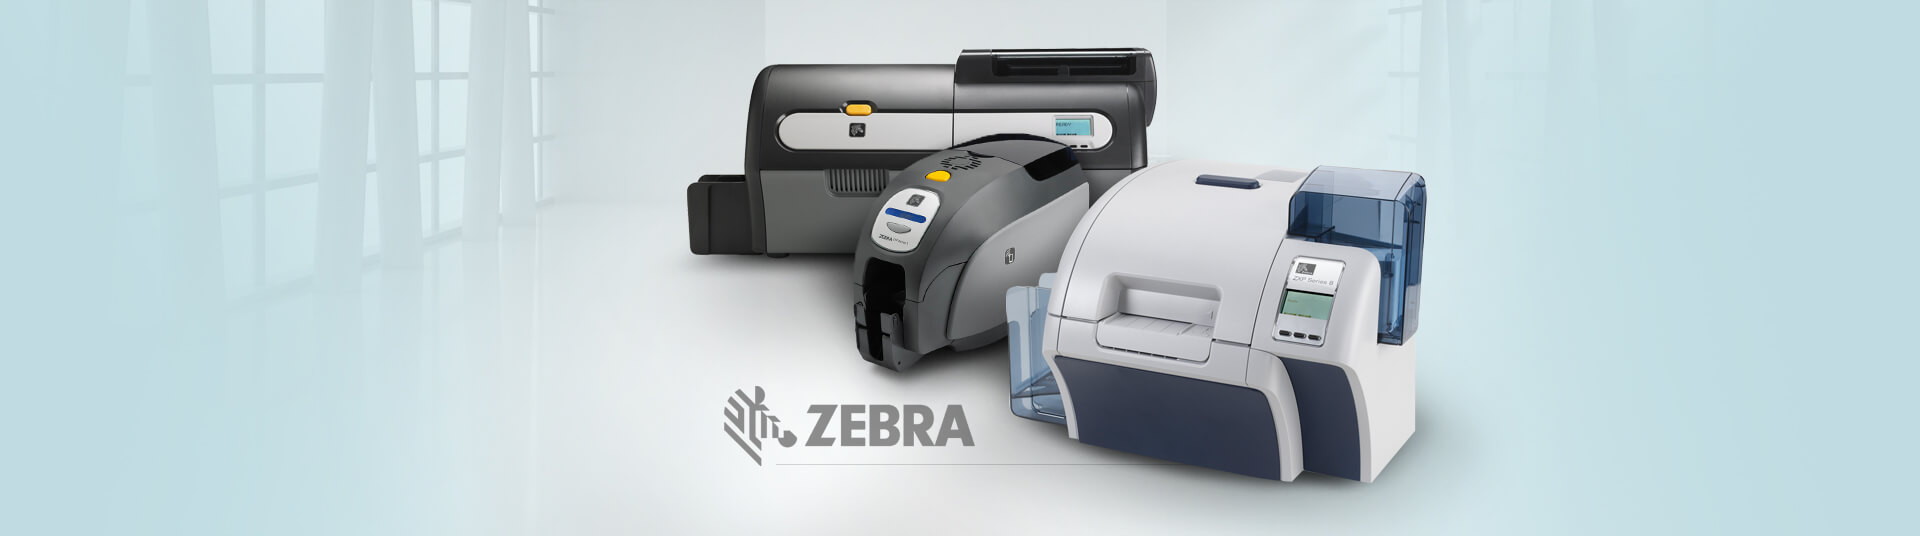 zebra id makers for employee id badges alphacard